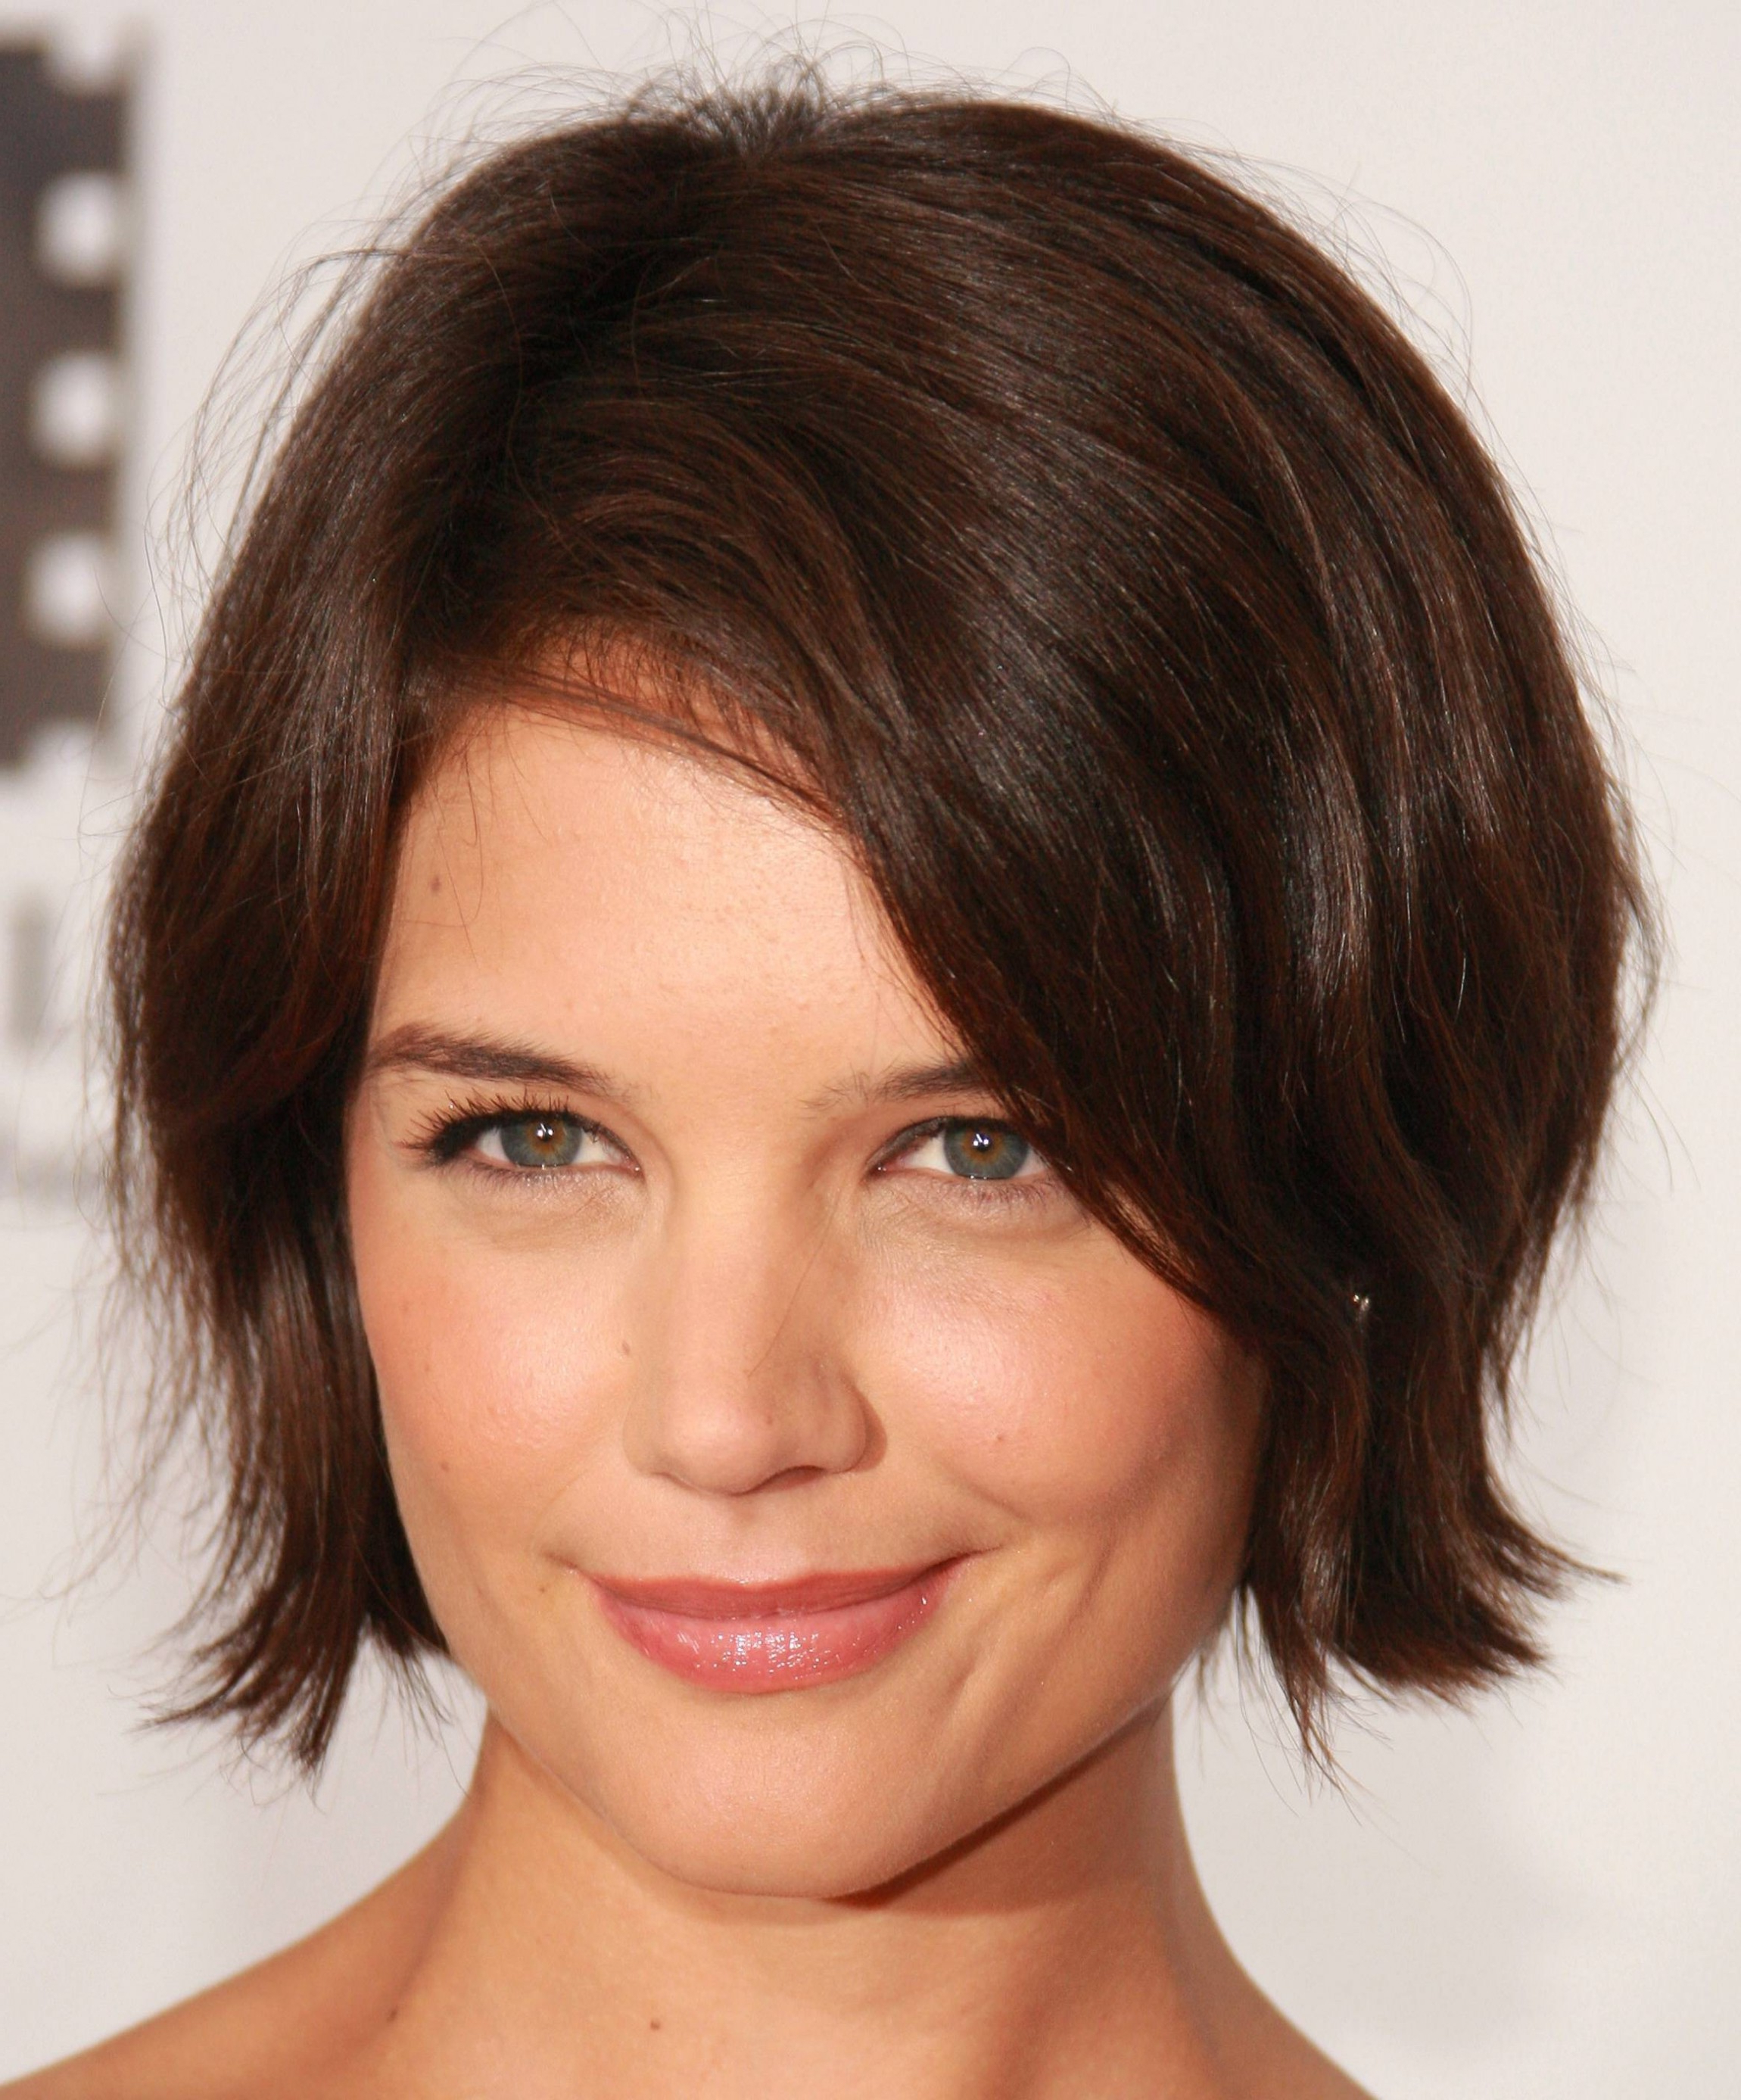 Best Short Hairstyles – Cute Hair Cut Guide For Round Face Shape Pertaining To Short Haircuts For Big Face (View 10 of 25)